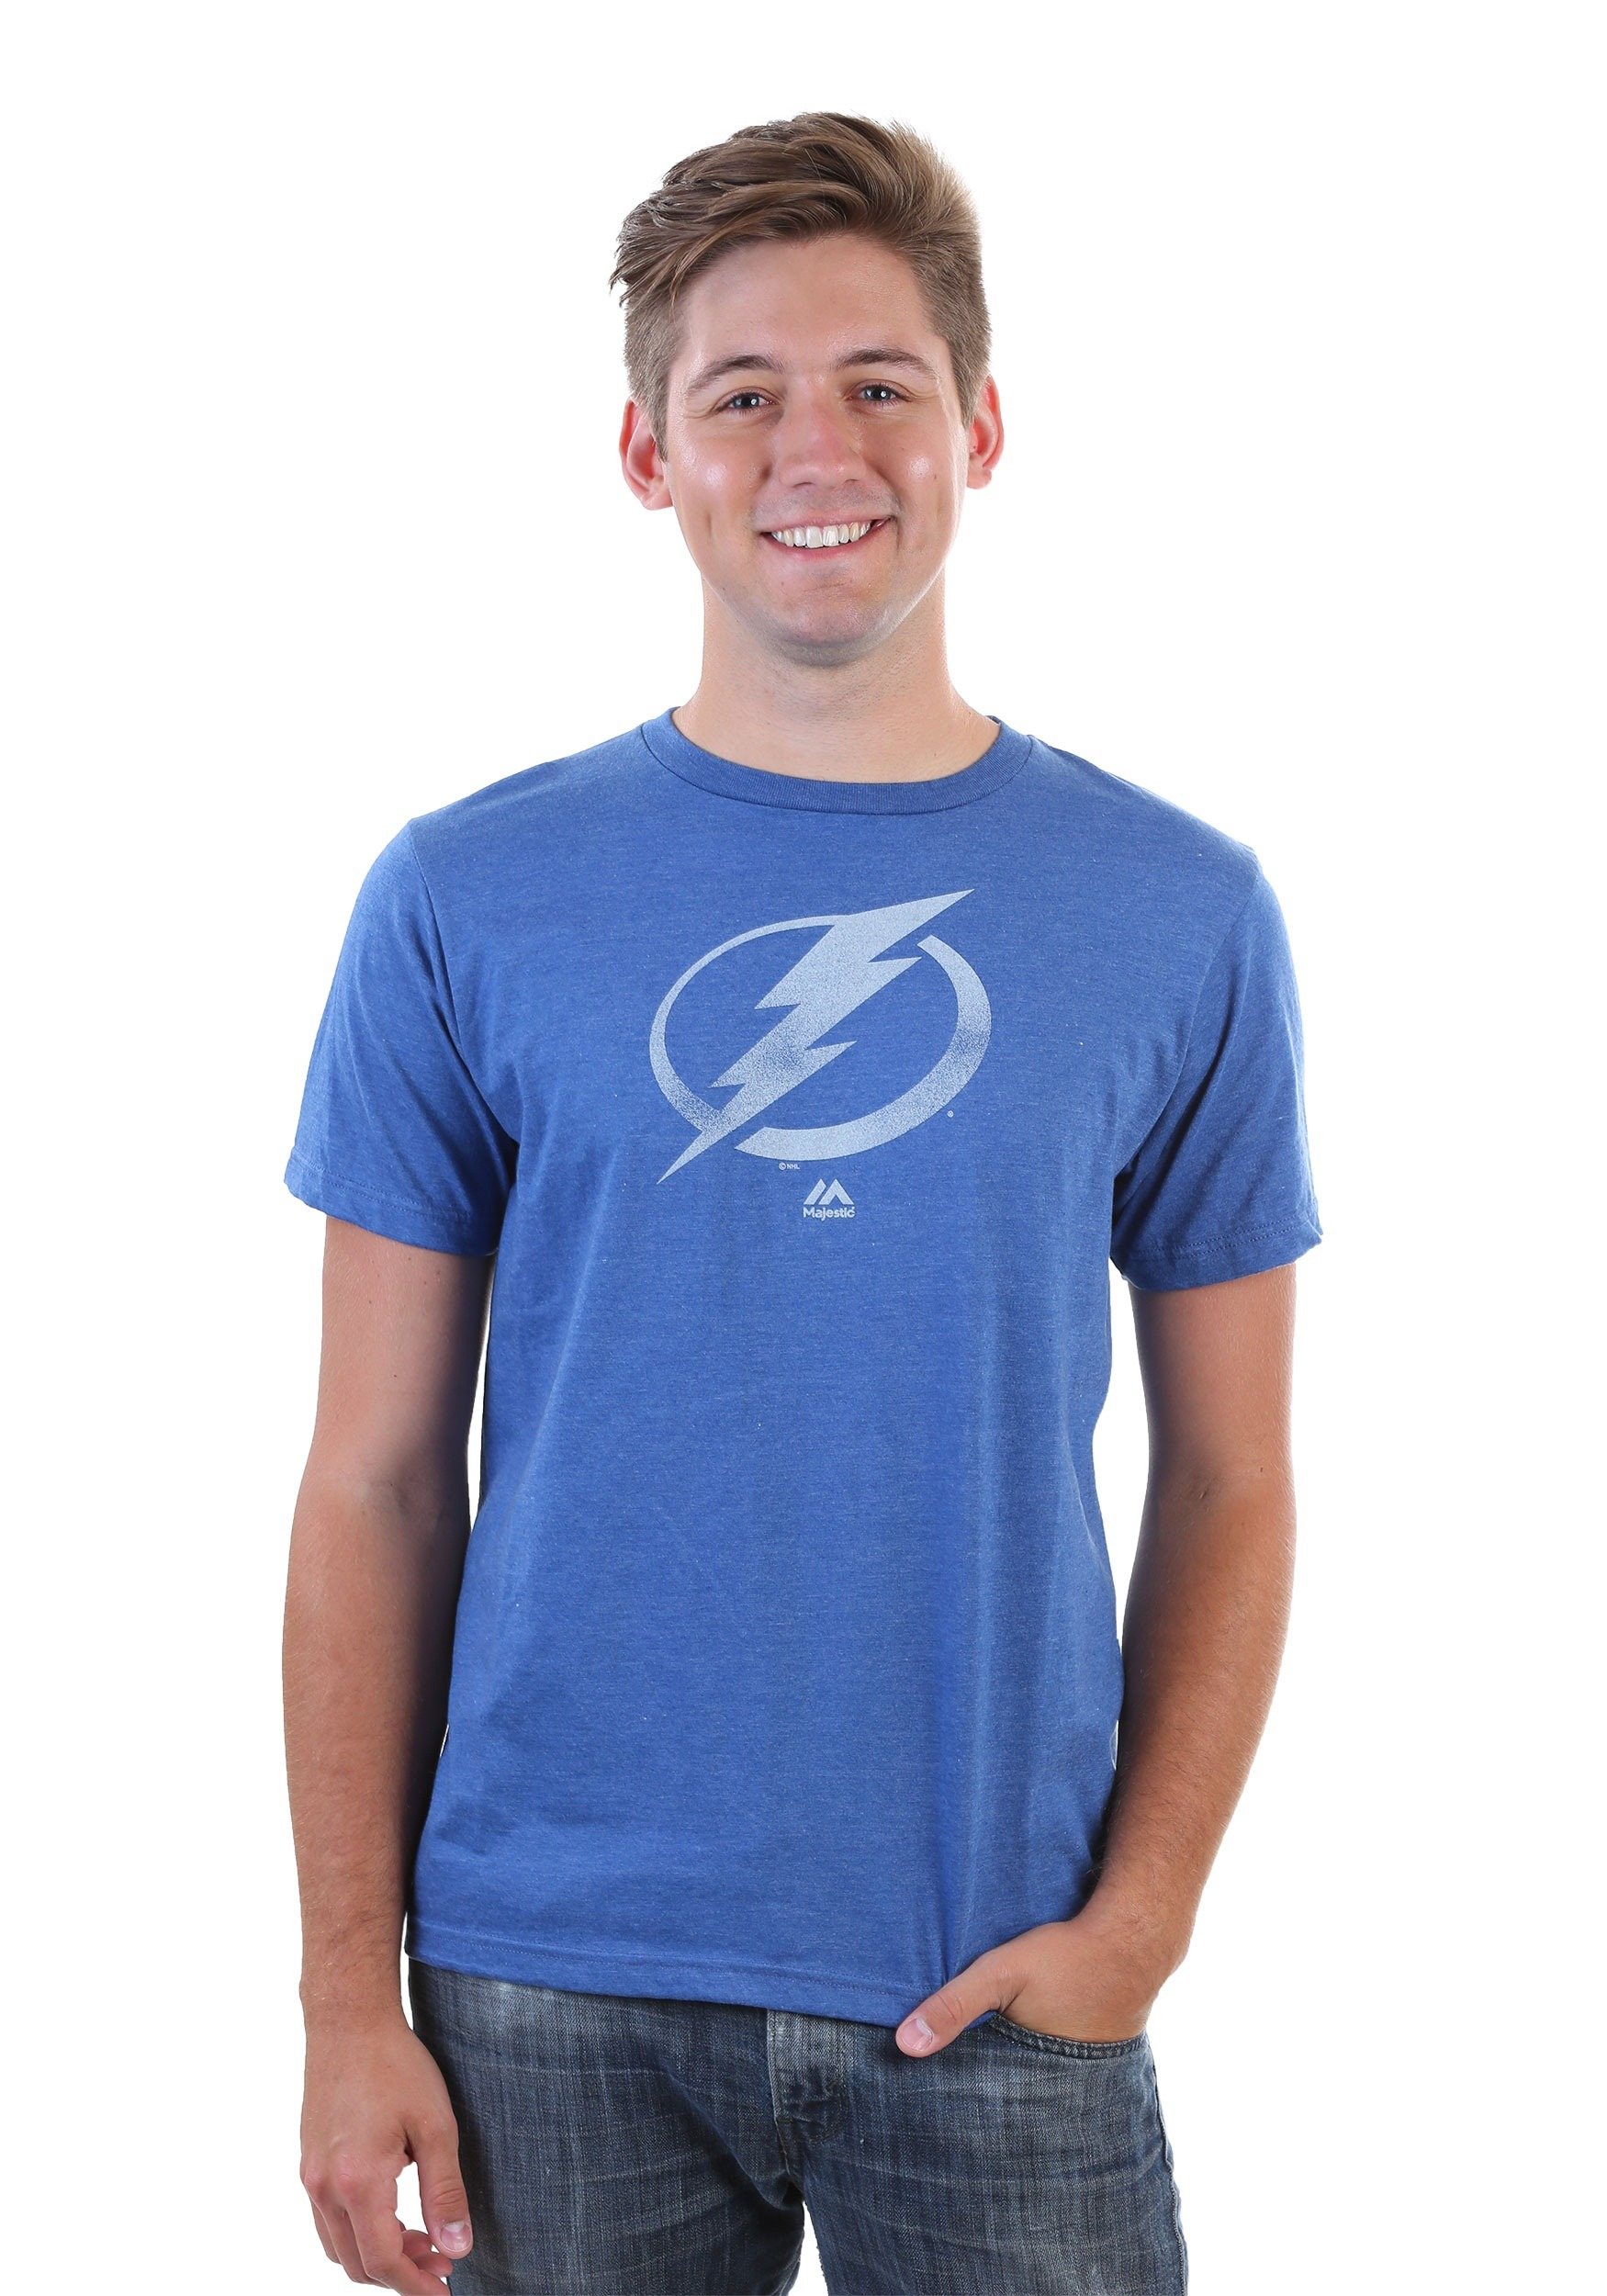 Mens Tampa Bay Lightning Raise the Level Shirt MJMTP2668A2GKJJ7